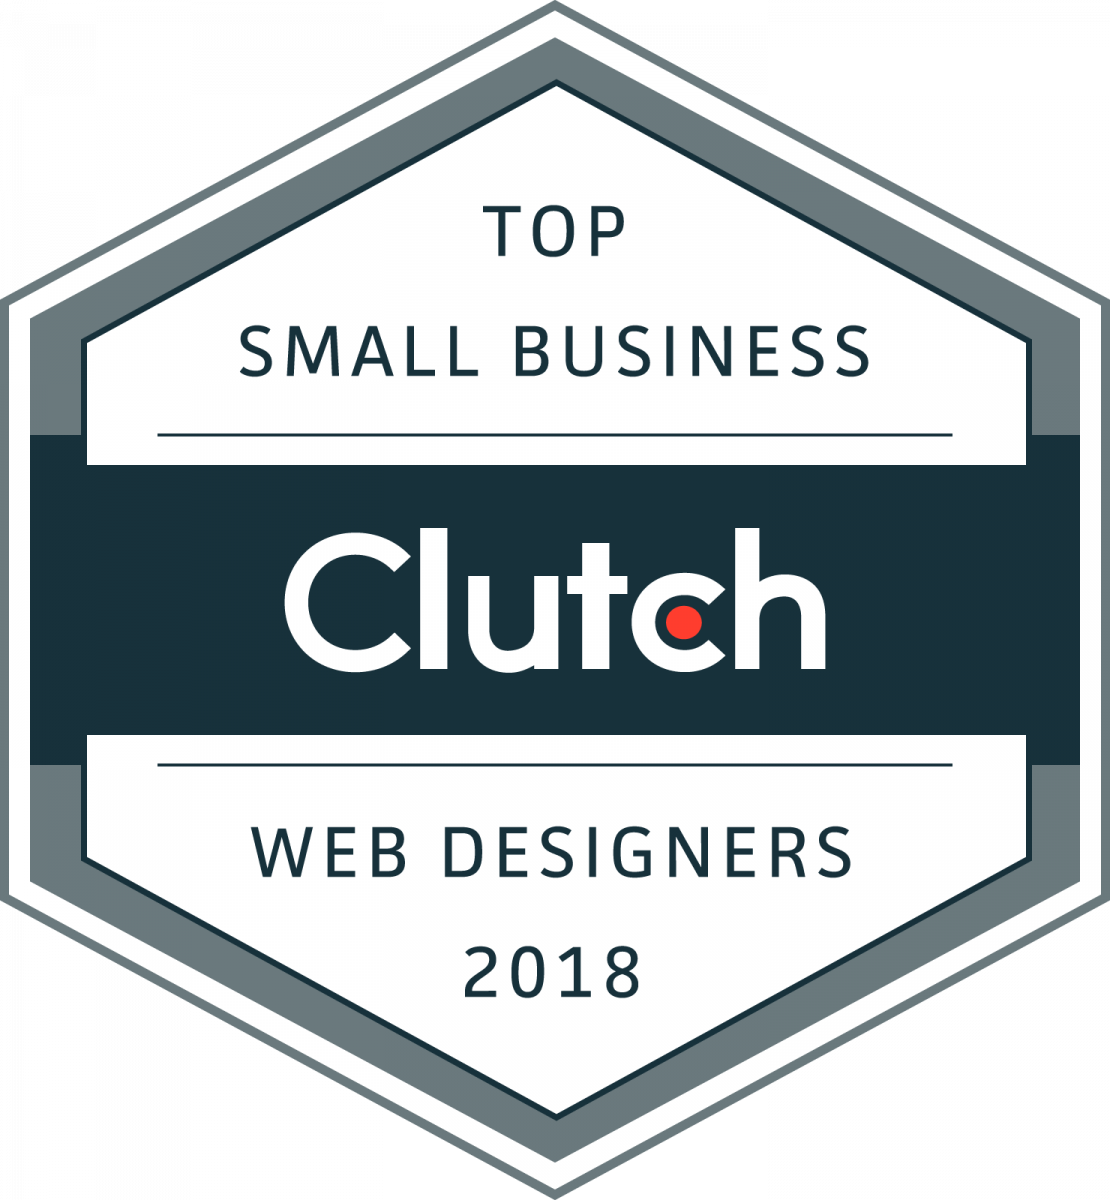 Certified Top Small Business Web Designer